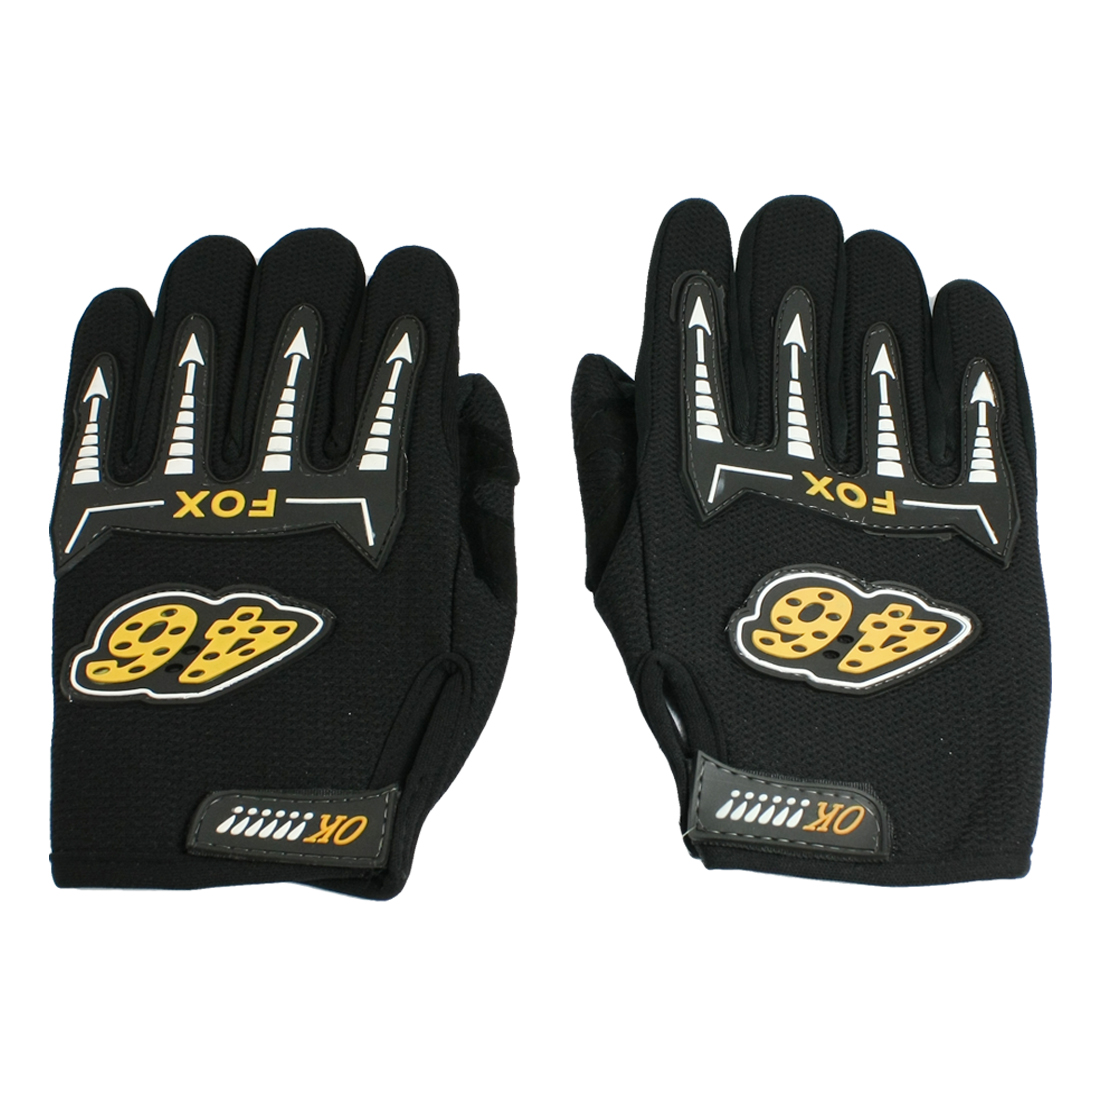 Pair Mesh Holes Design Nonslip Palm Full Finger Riding Gloves Black for Men